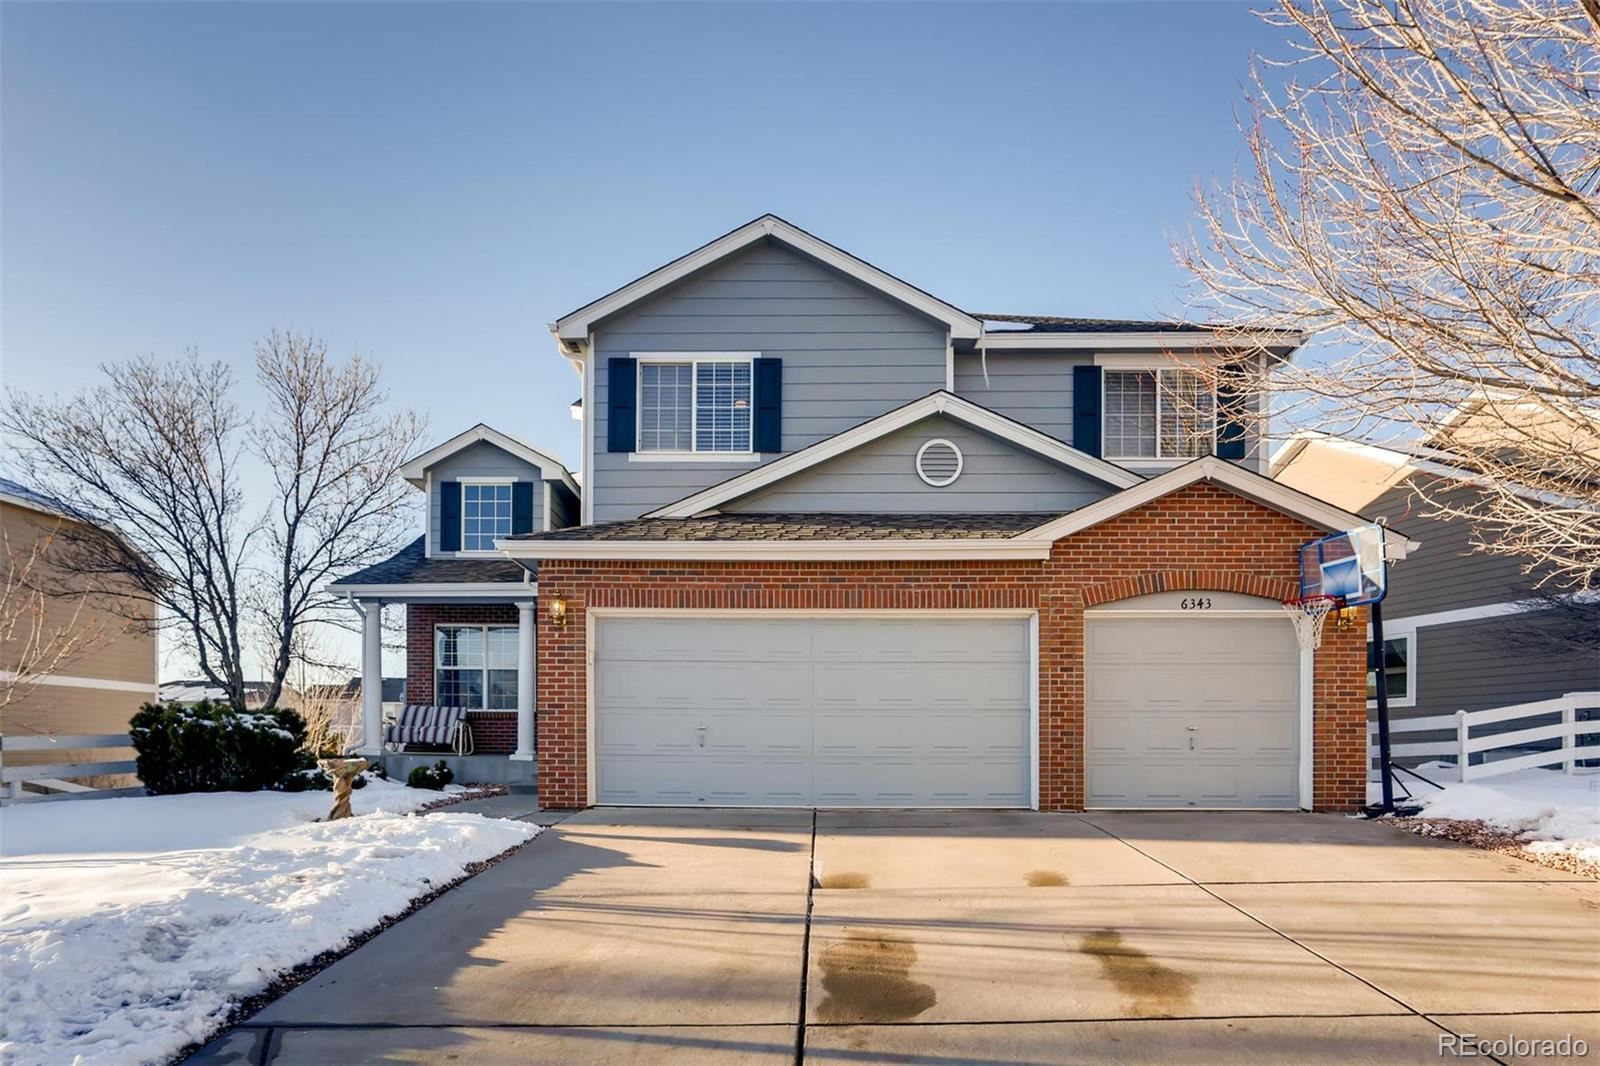 6343 S Jericho Way, Centennial, CO 80016 - #: 9332004